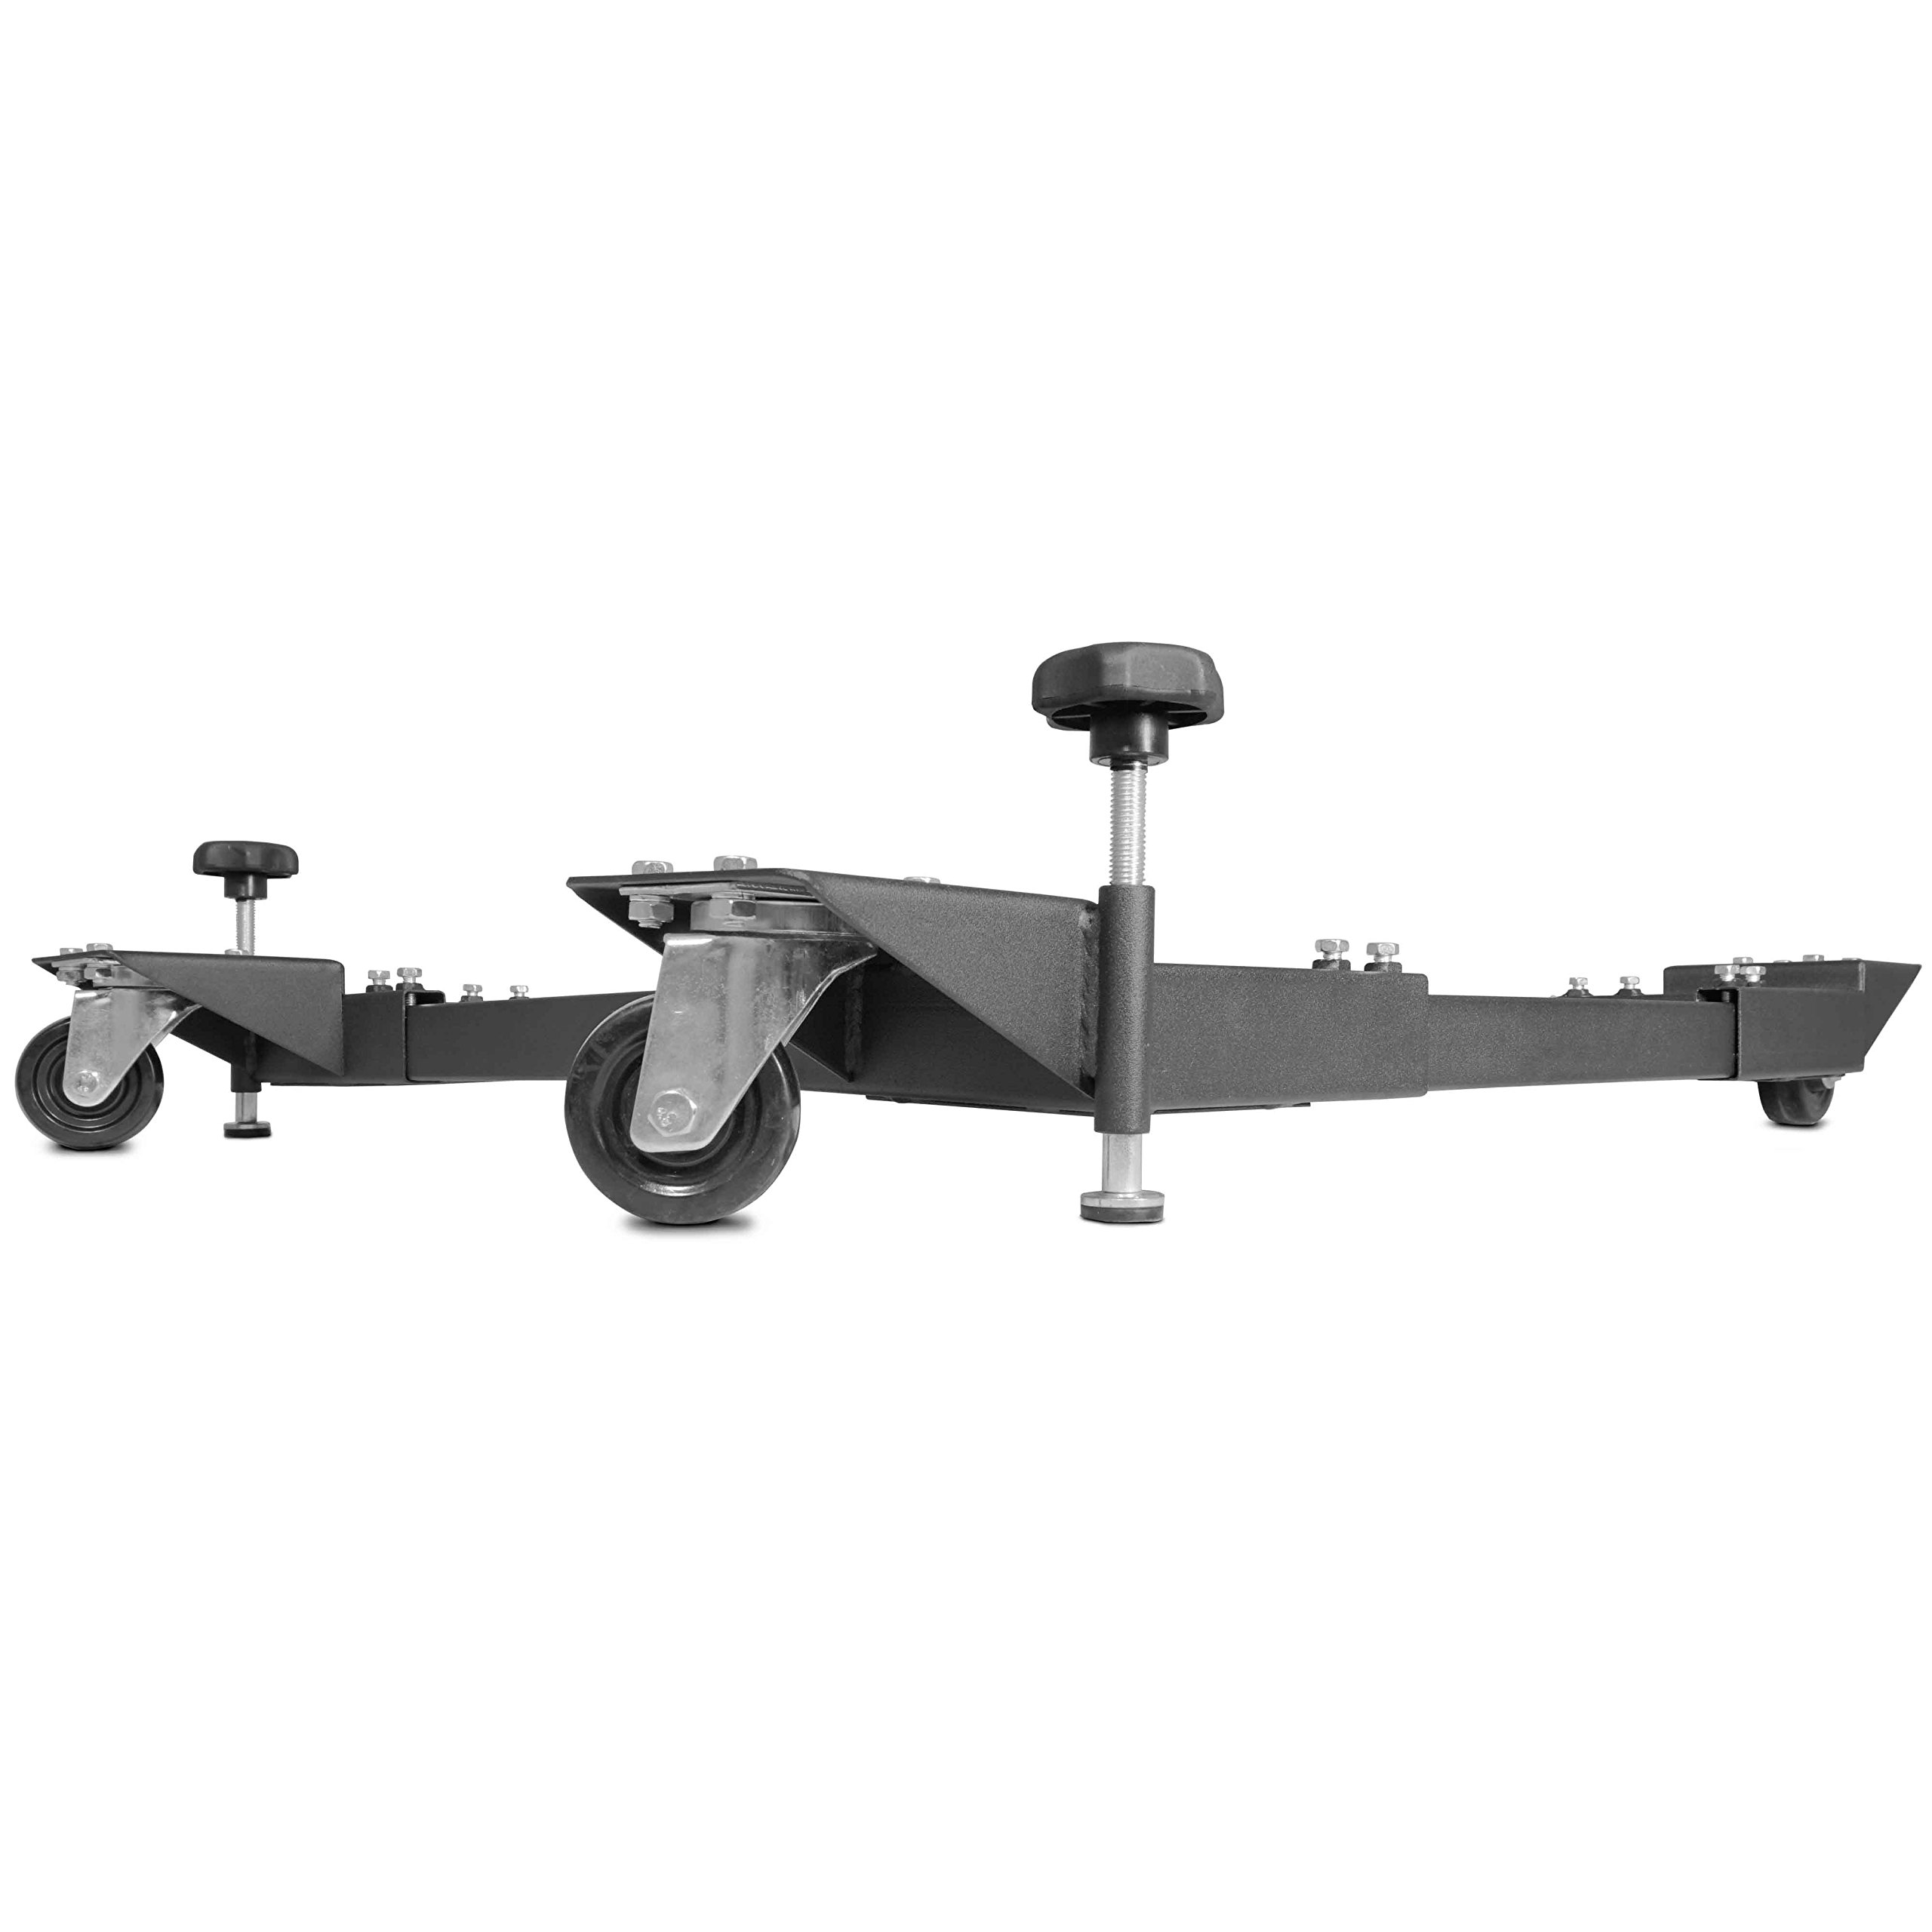 Titan Adjustable Mobile Base Dolly 600 lb Capacity HD Universal Power Tools - Make Your Workshop Portable & Easy To Use by Titan Attachments (Image #4)